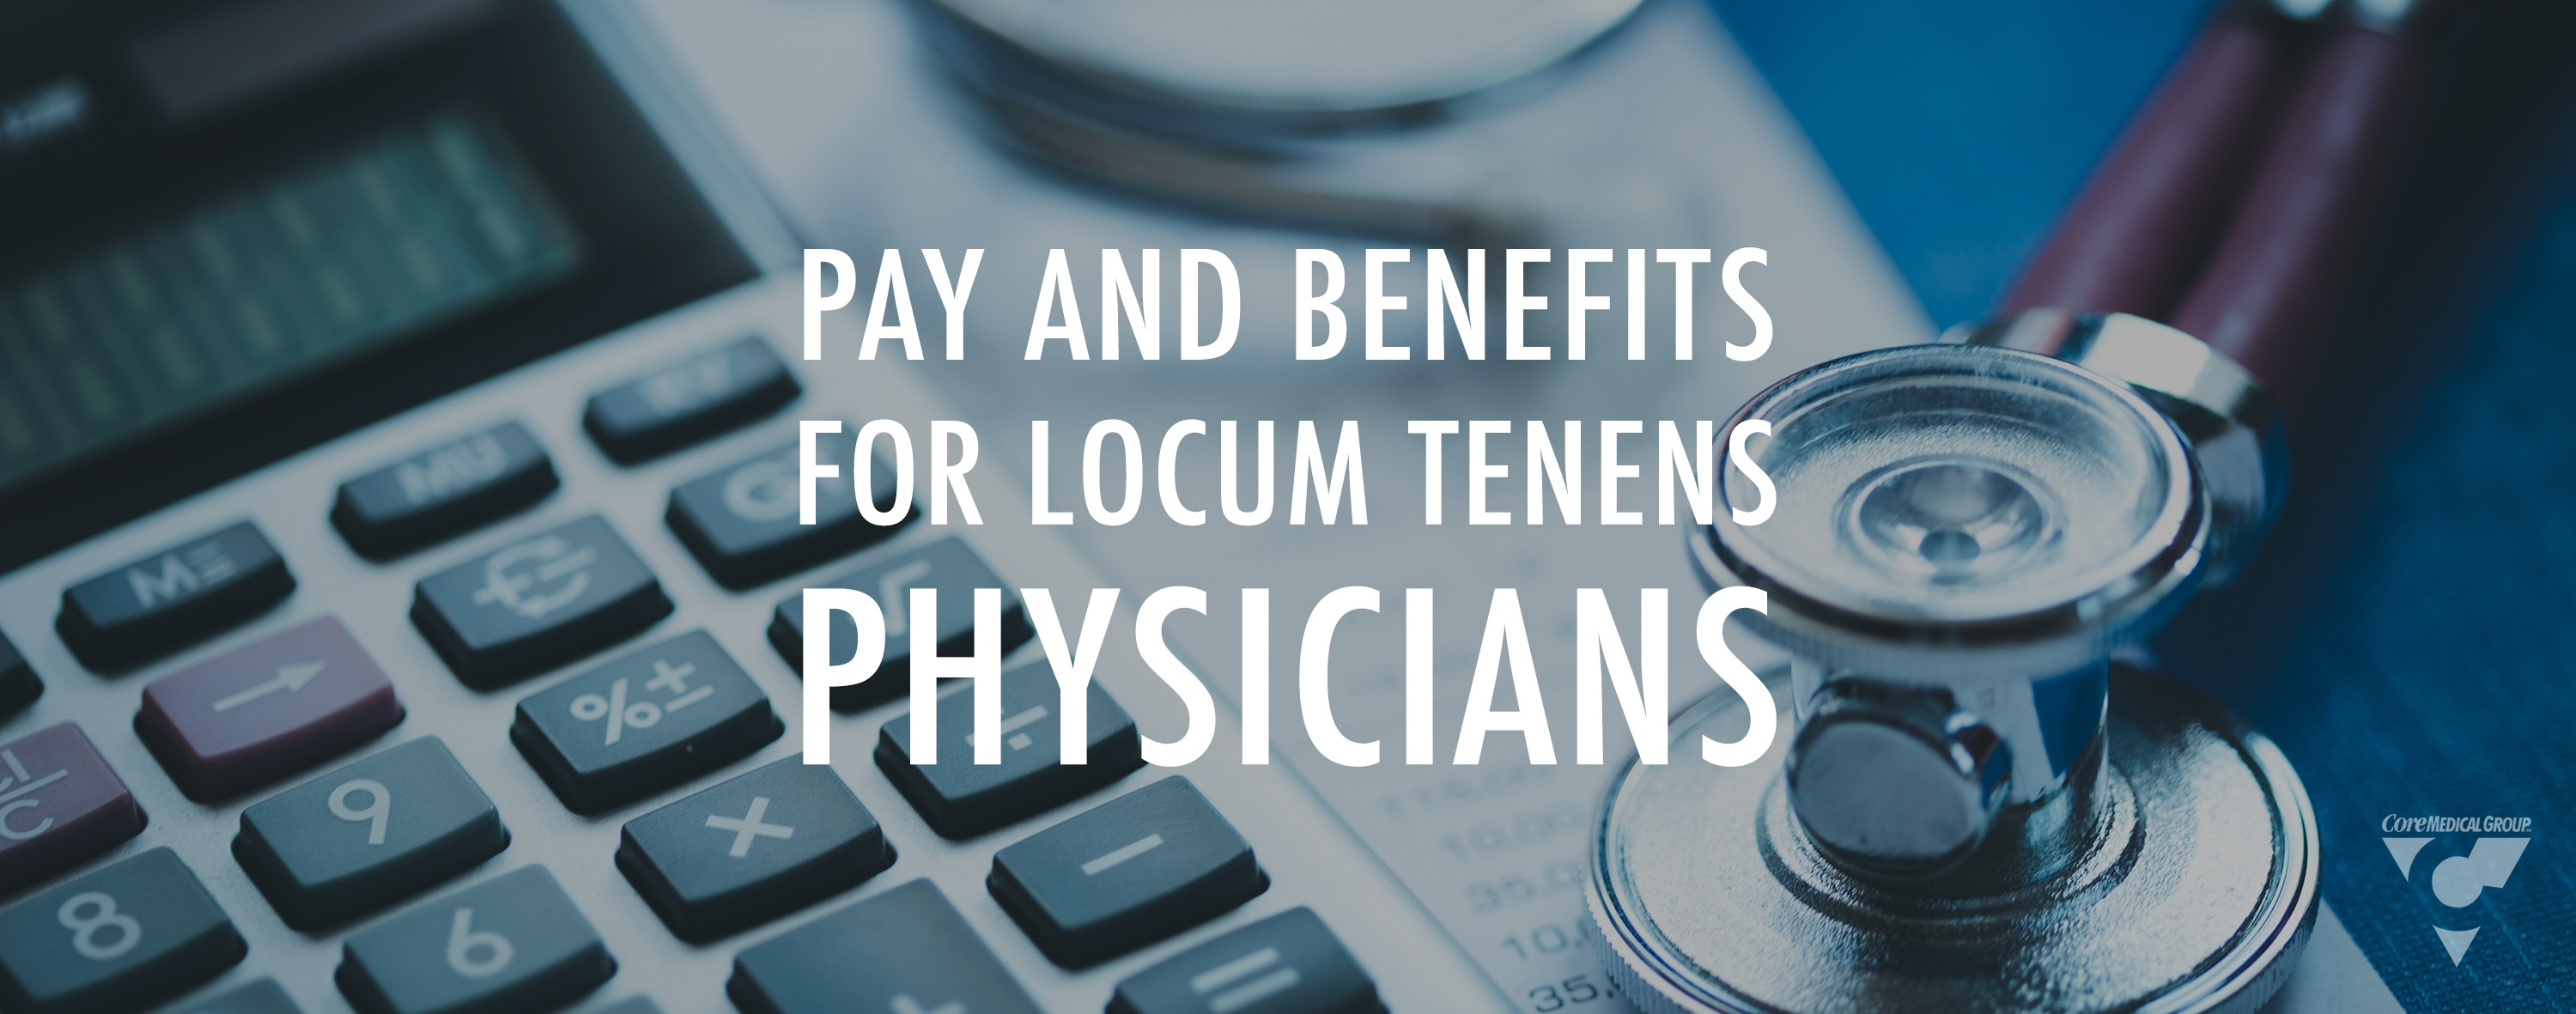 Pay_and_Benefits_for_Locum_tenens_physicians_blog_feature_image